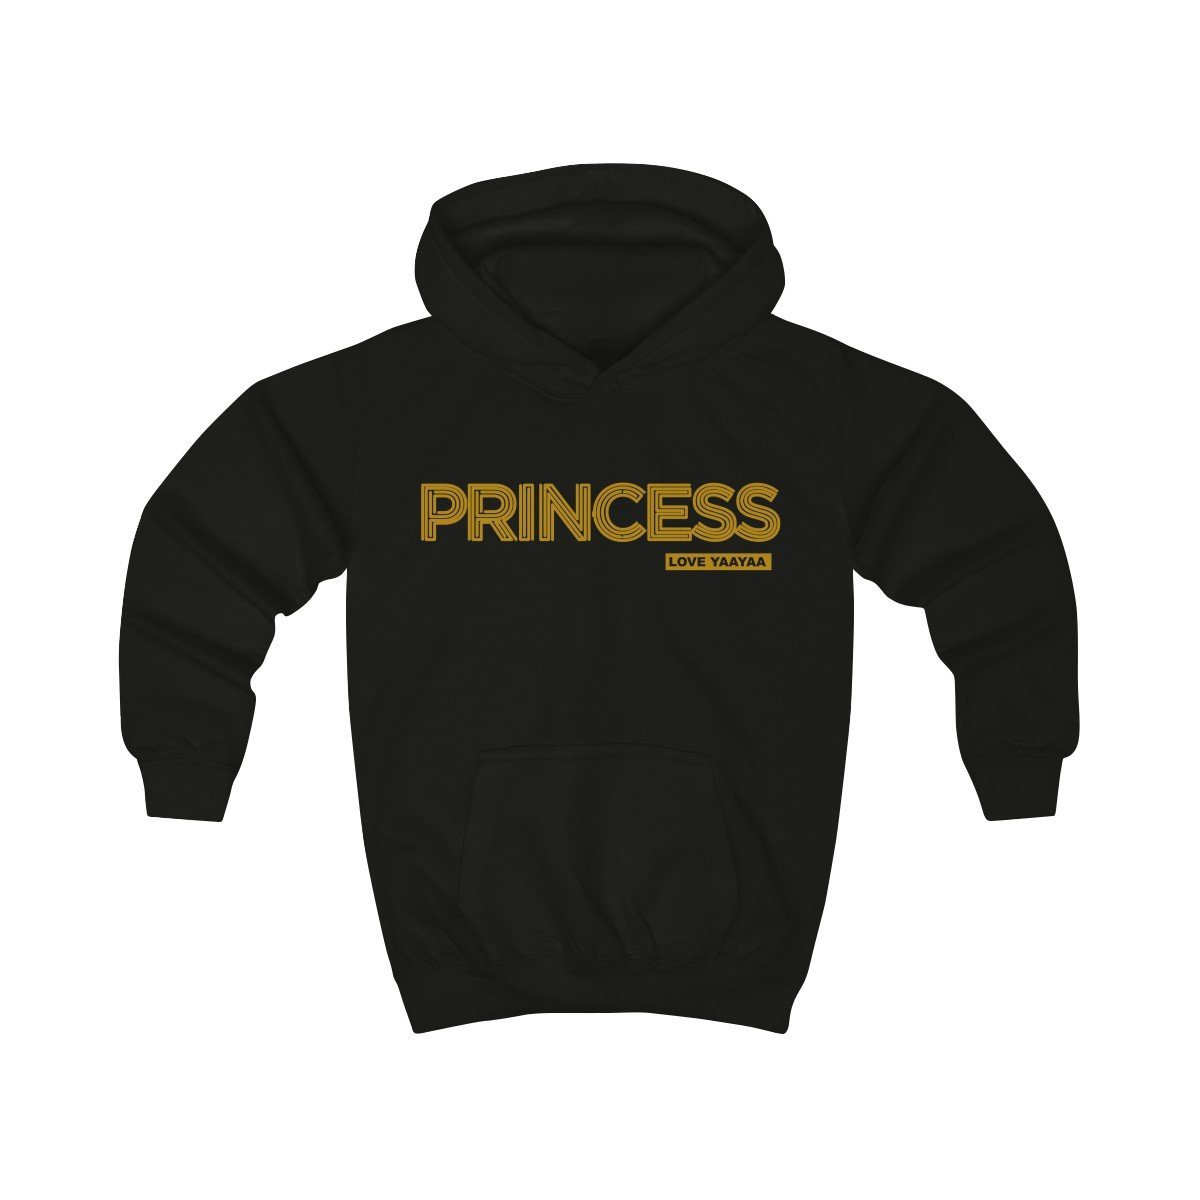 Princess Childrens Hoodie - sizes 1 to 14 years old - loveyaayaa